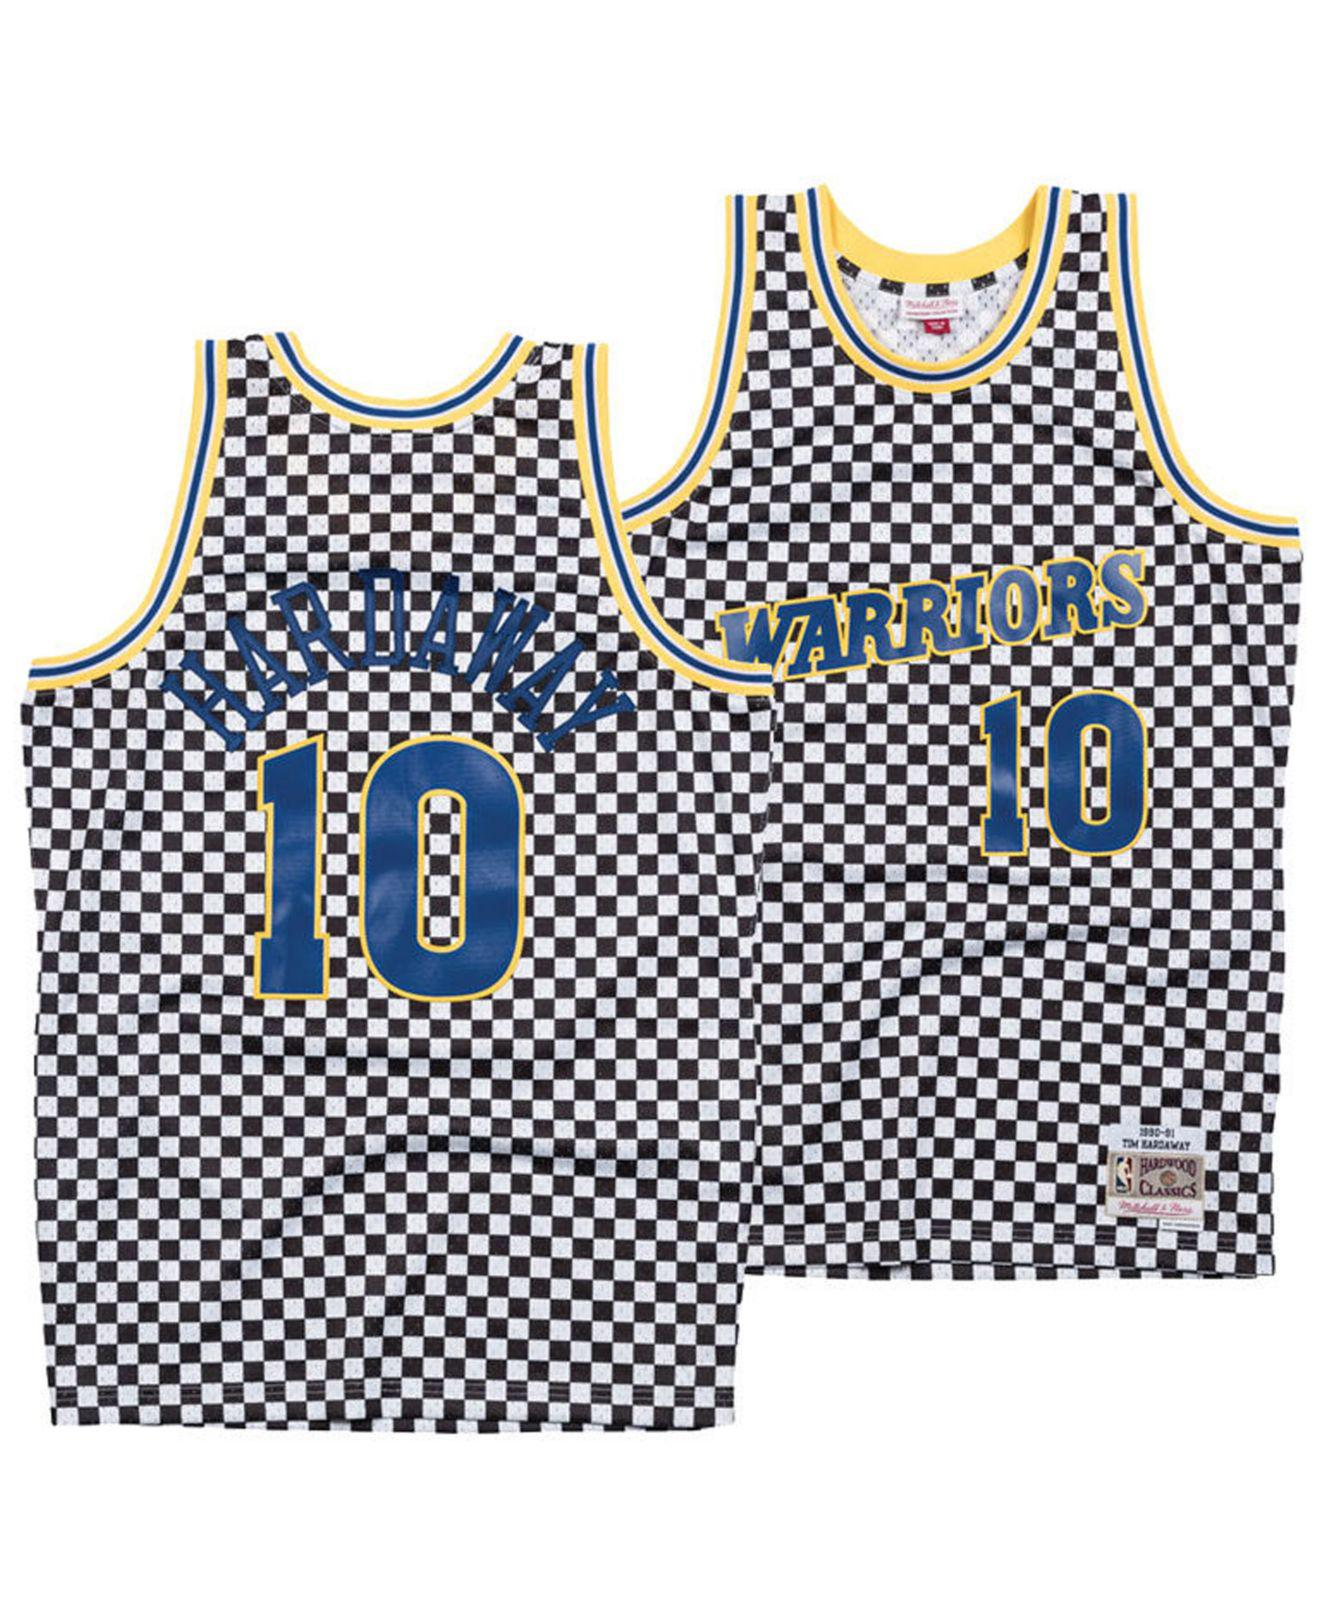 Lyst - Mitchell   Ness Tim Hardaway Golden State Warriors ... 4399ed297